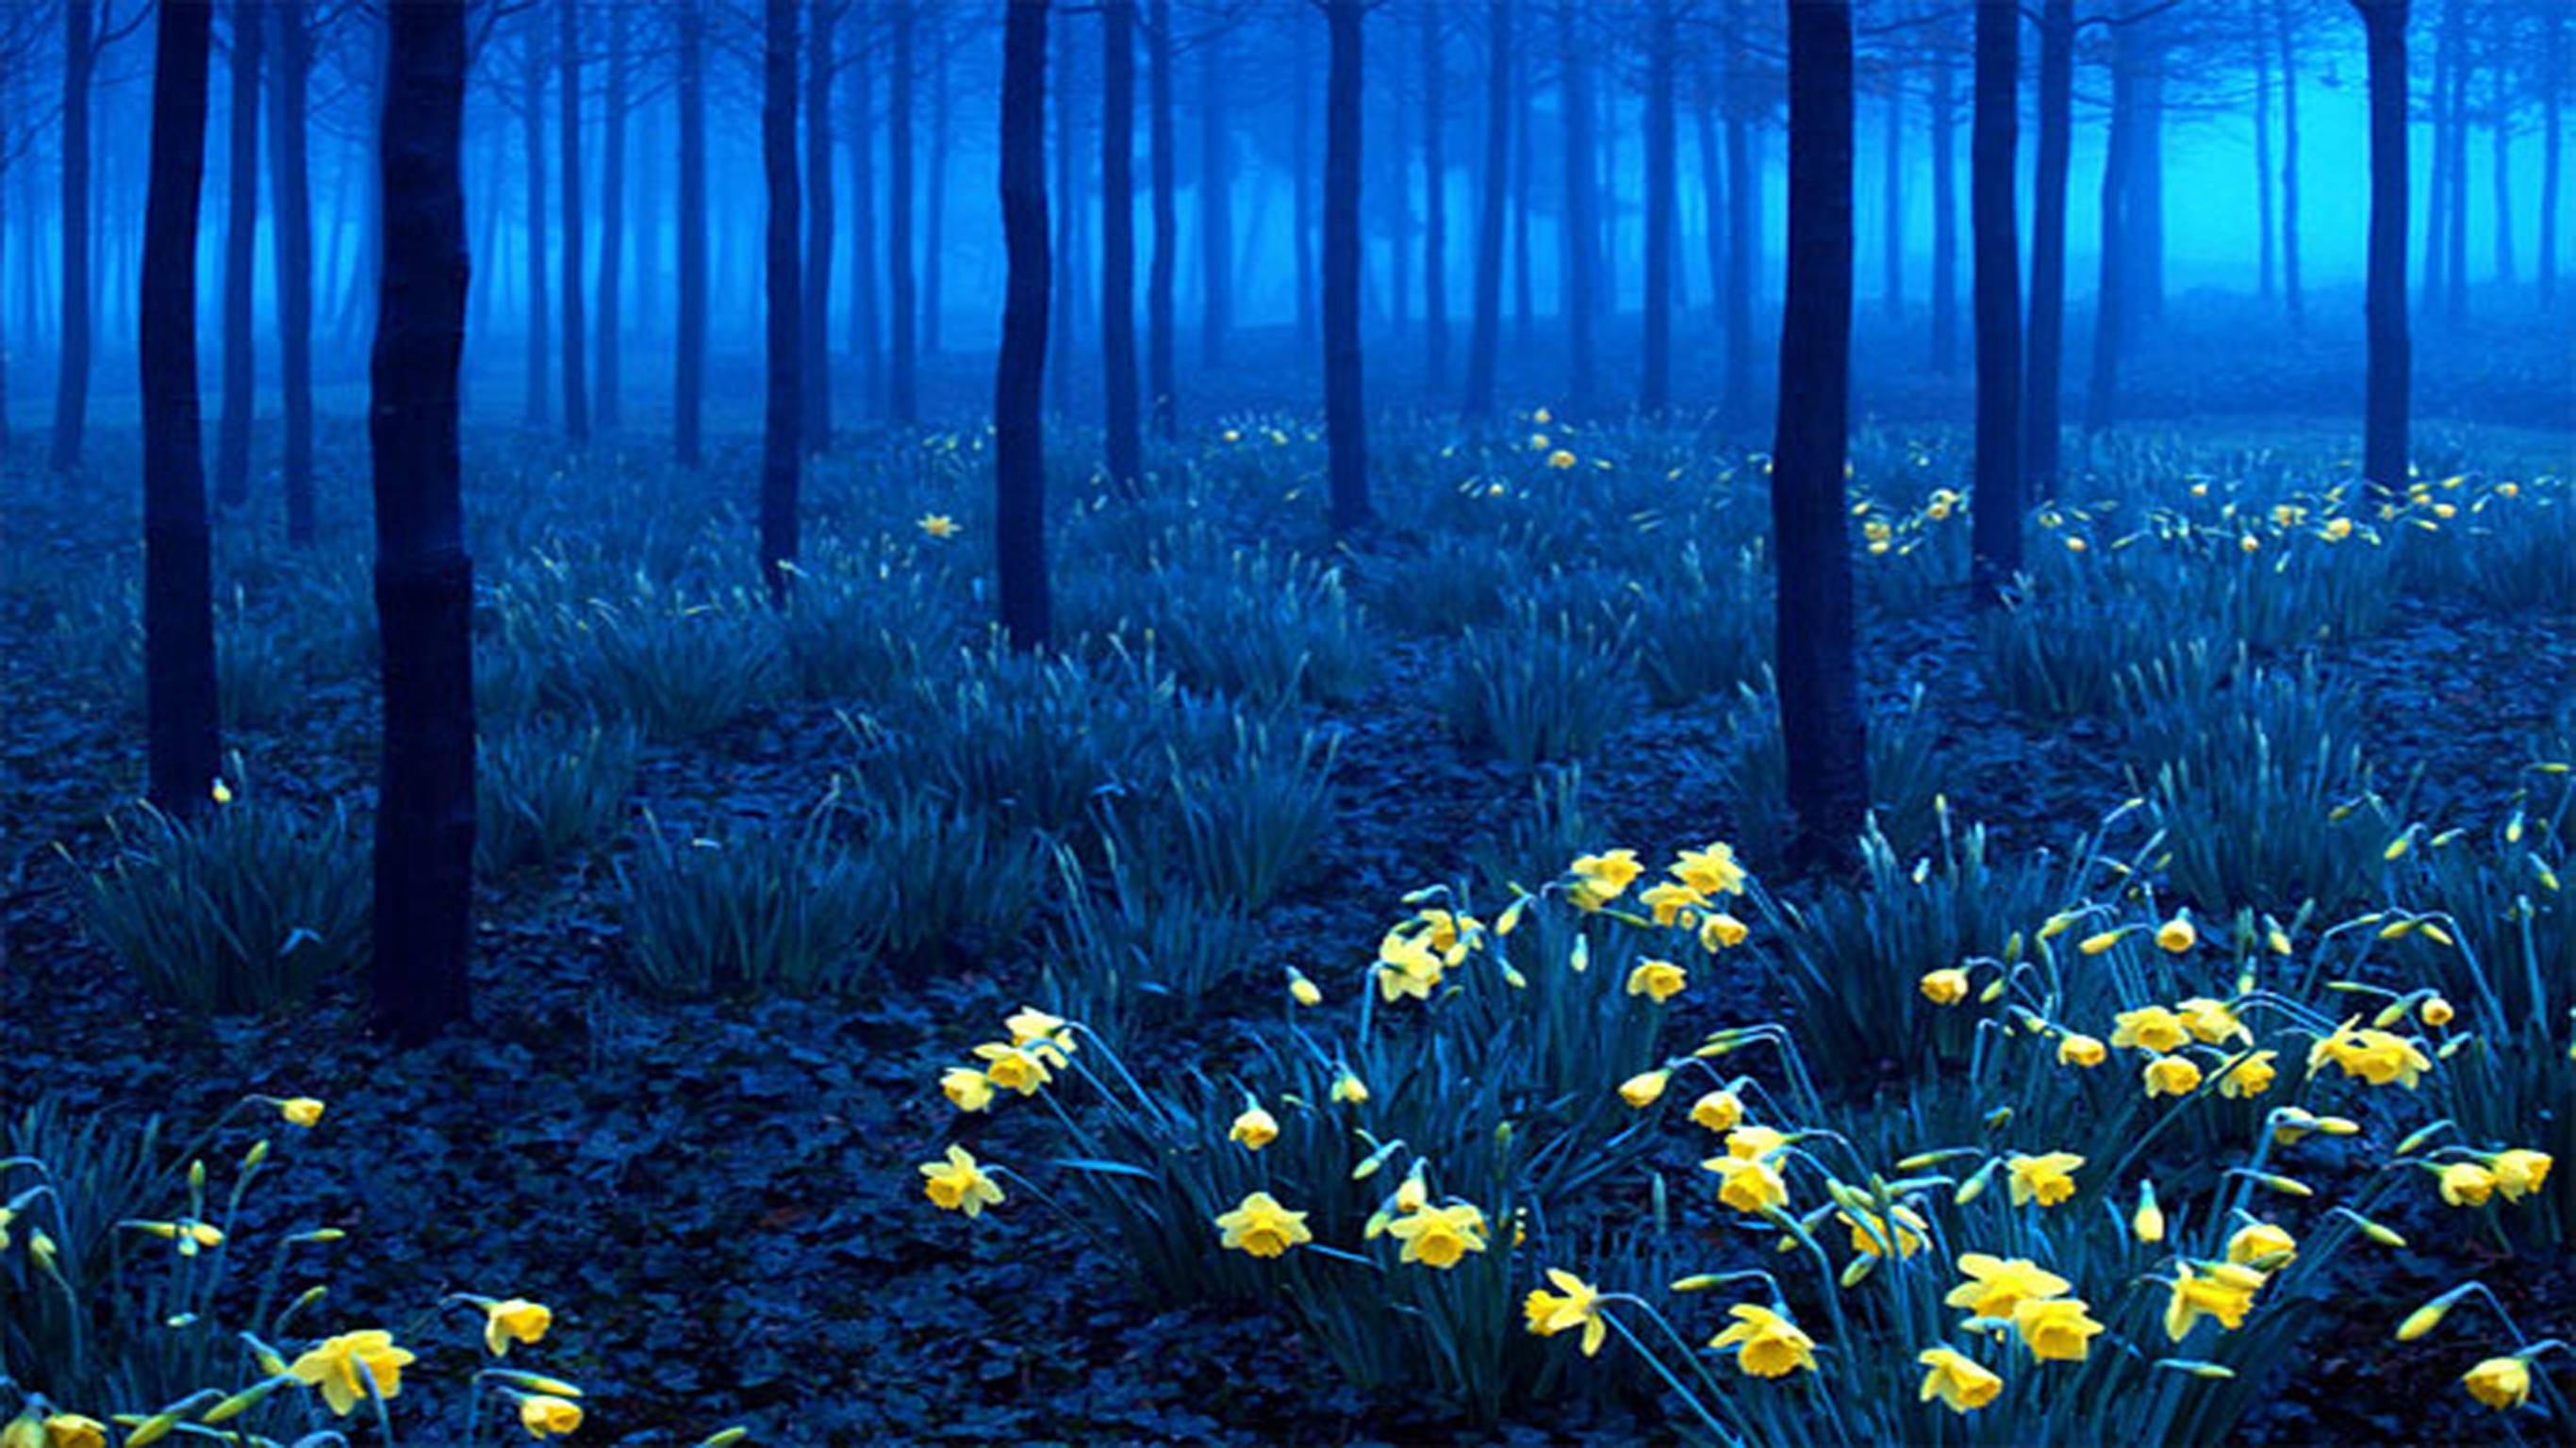 Blue Forest Wallpapers Top Free Blue Forest Backgrounds